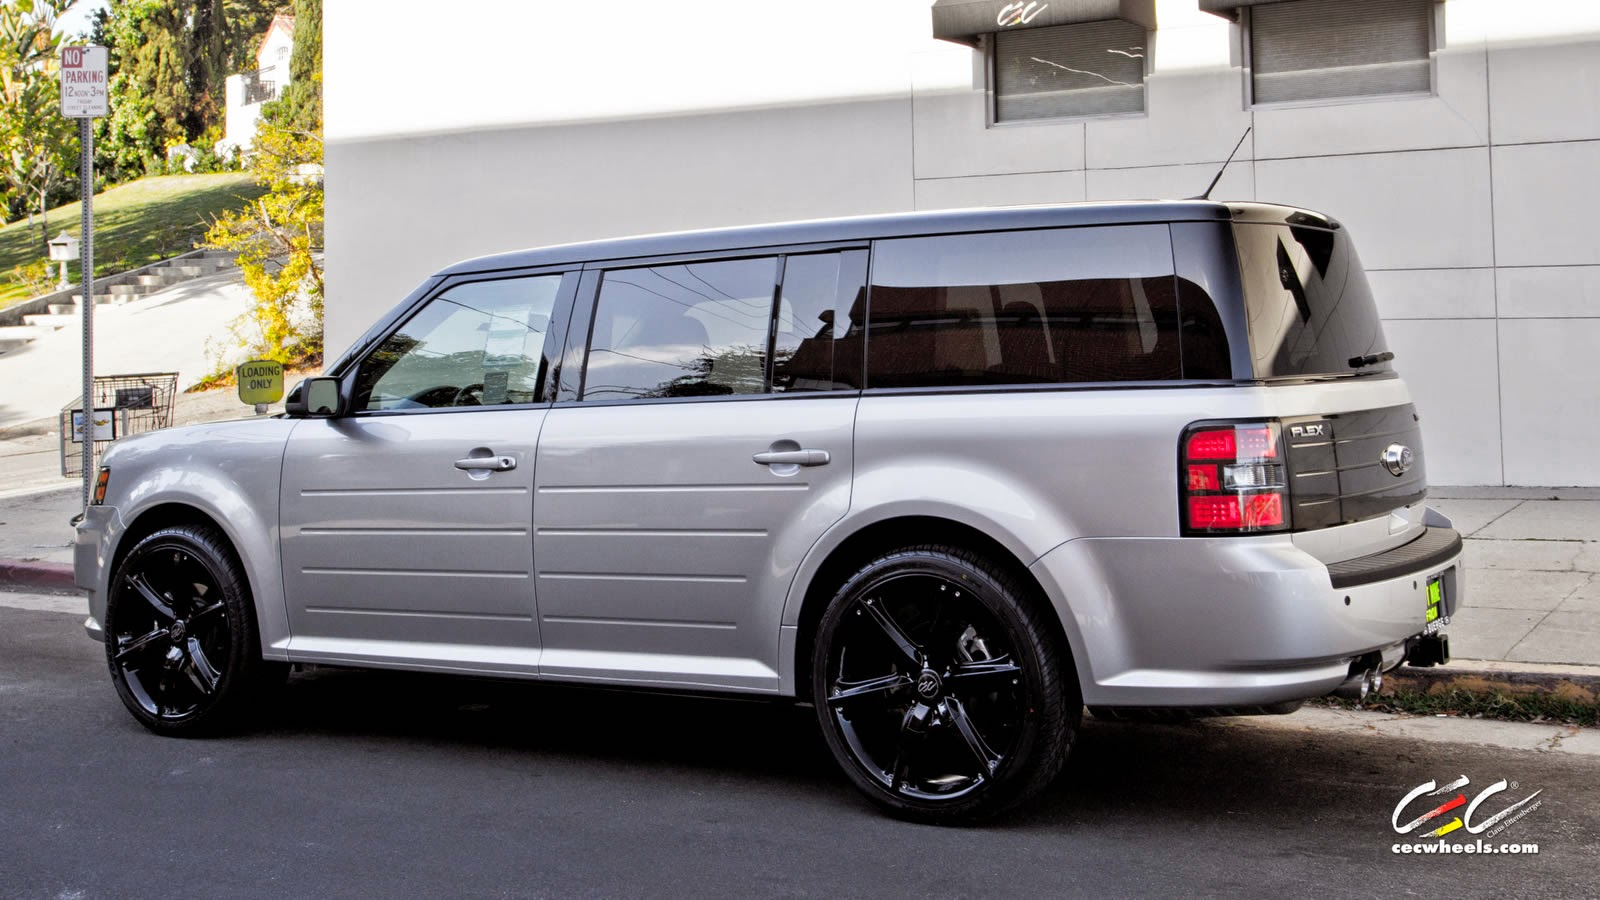 ford flex on c826 by cec wheels supercars show. Black Bedroom Furniture Sets. Home Design Ideas